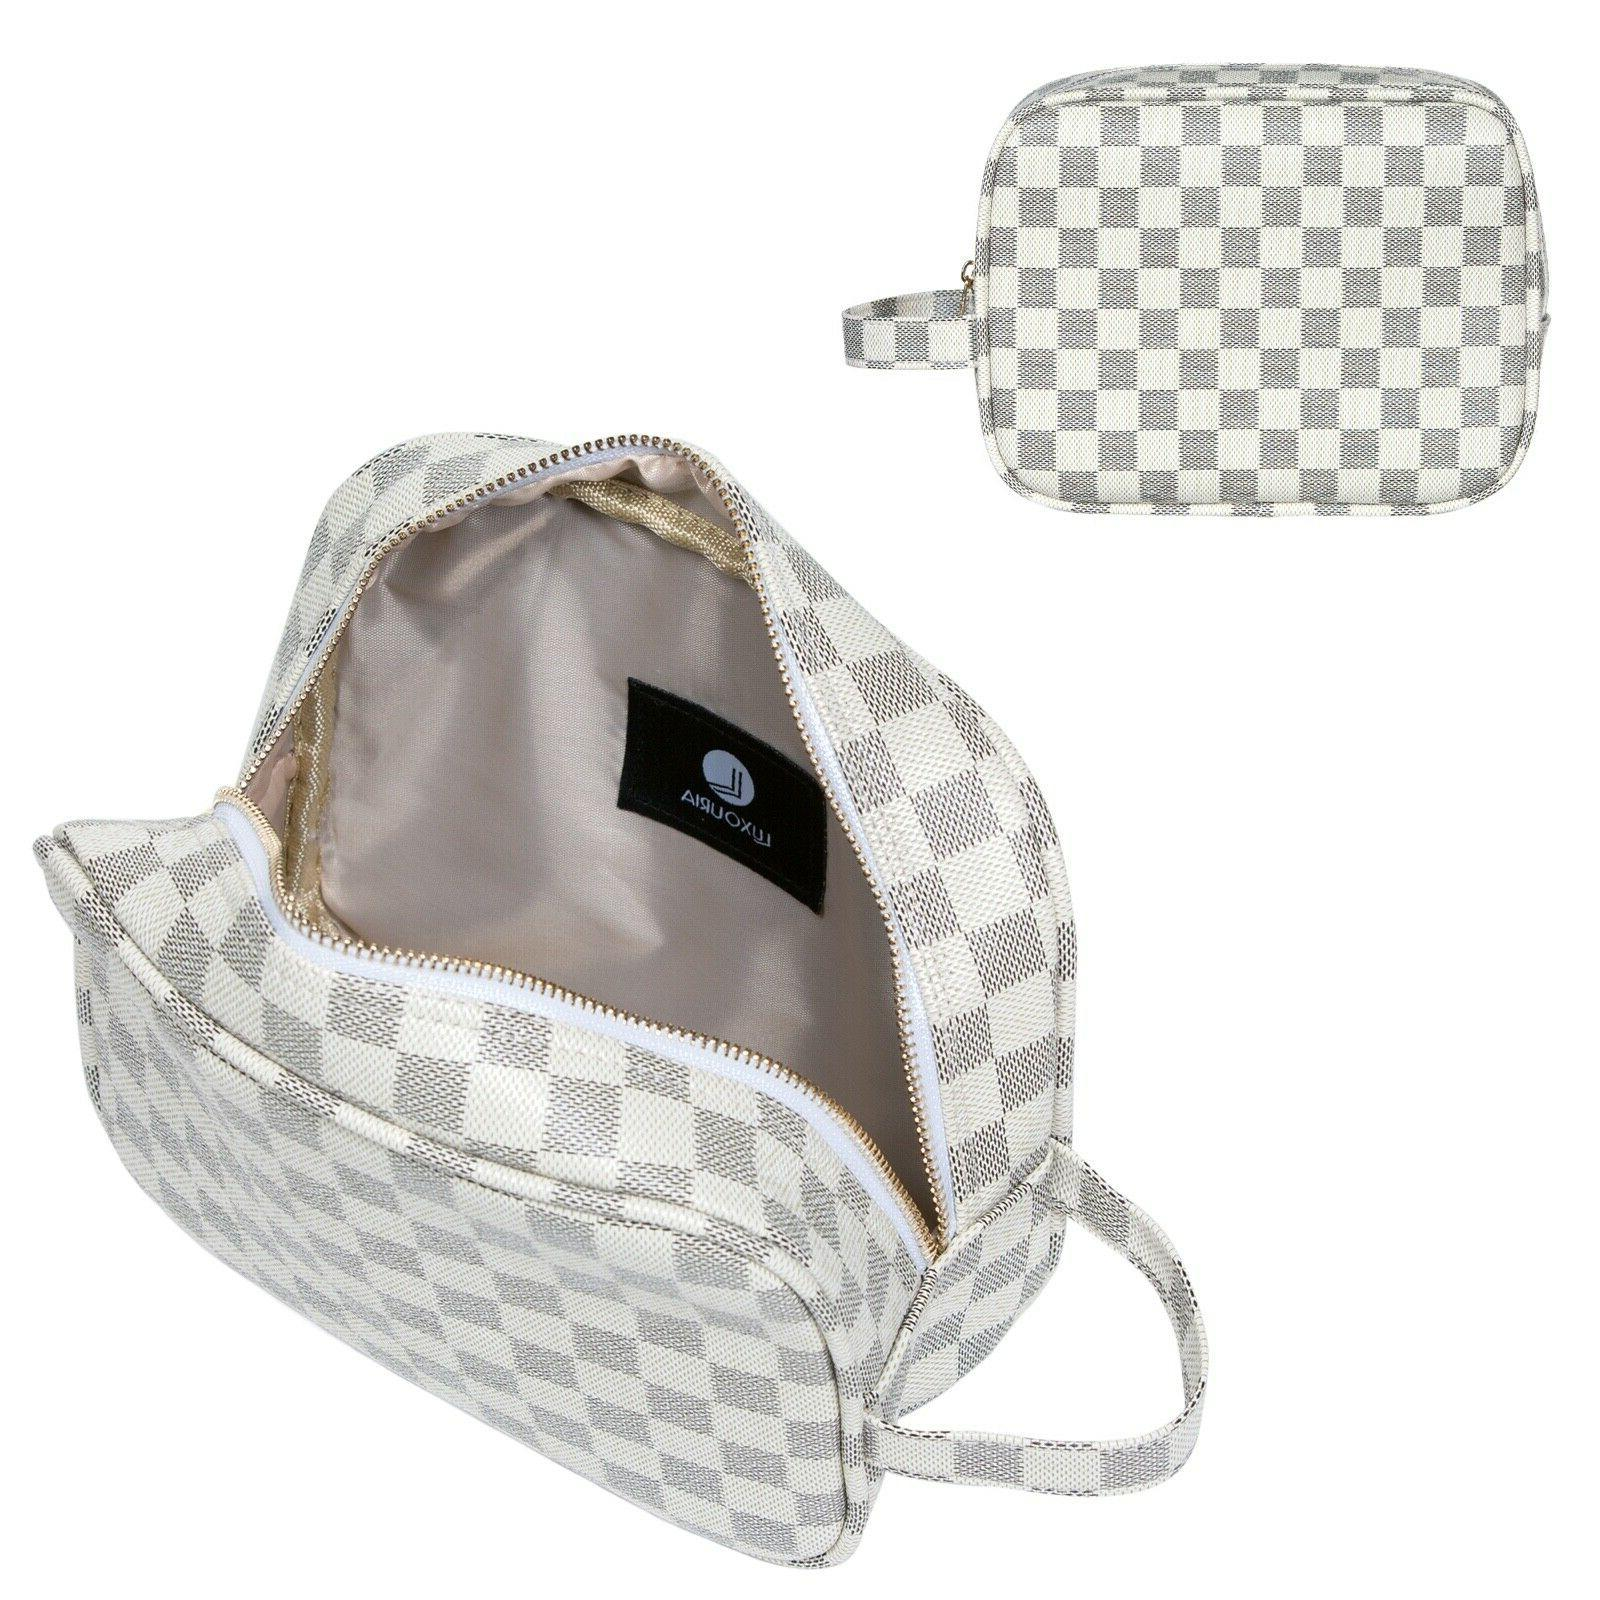 LUXOURIA Checkered Travel Luxury Cosmetics Bag Leather